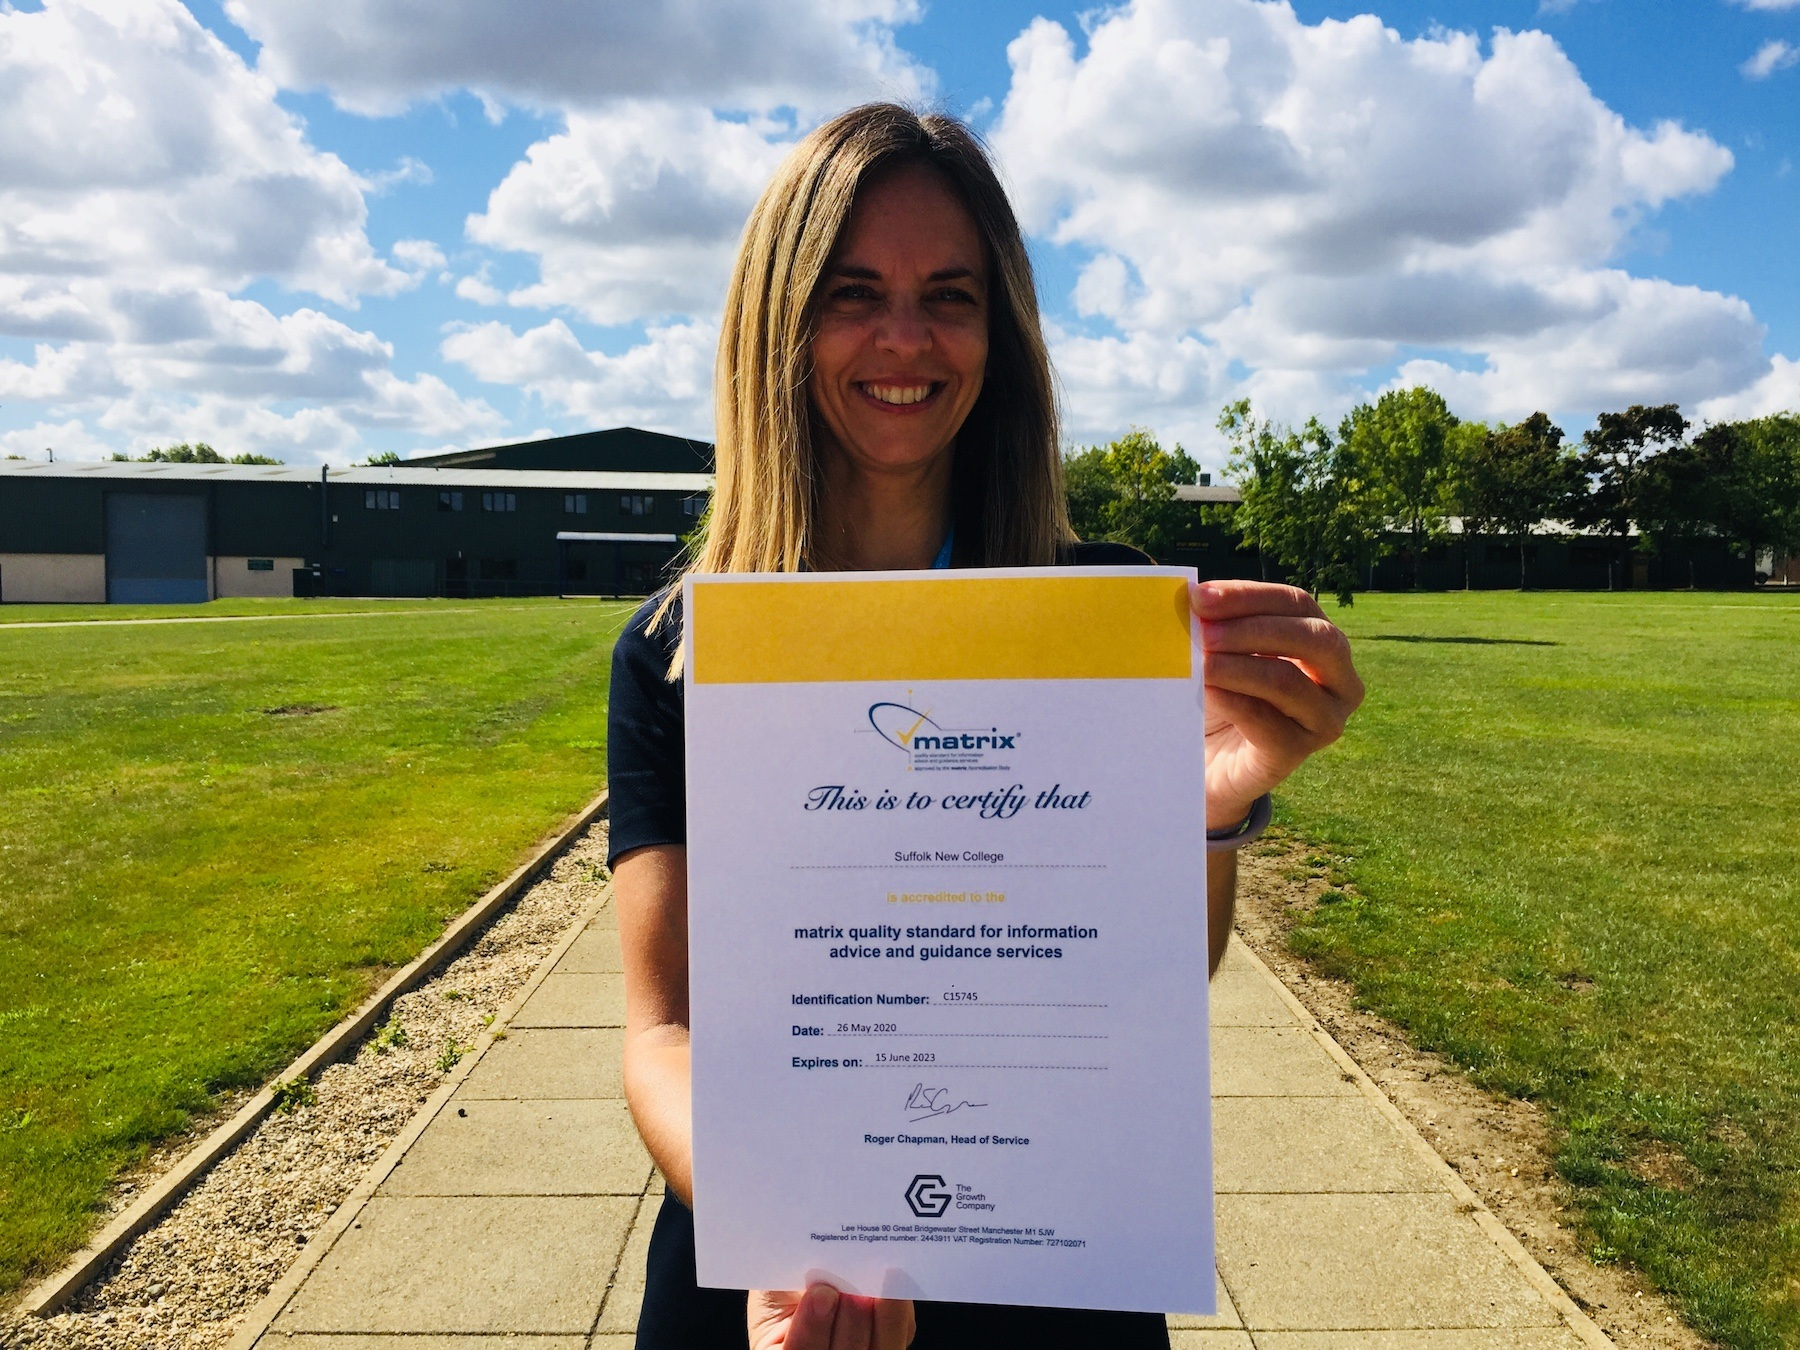 National assessor gives college top marks